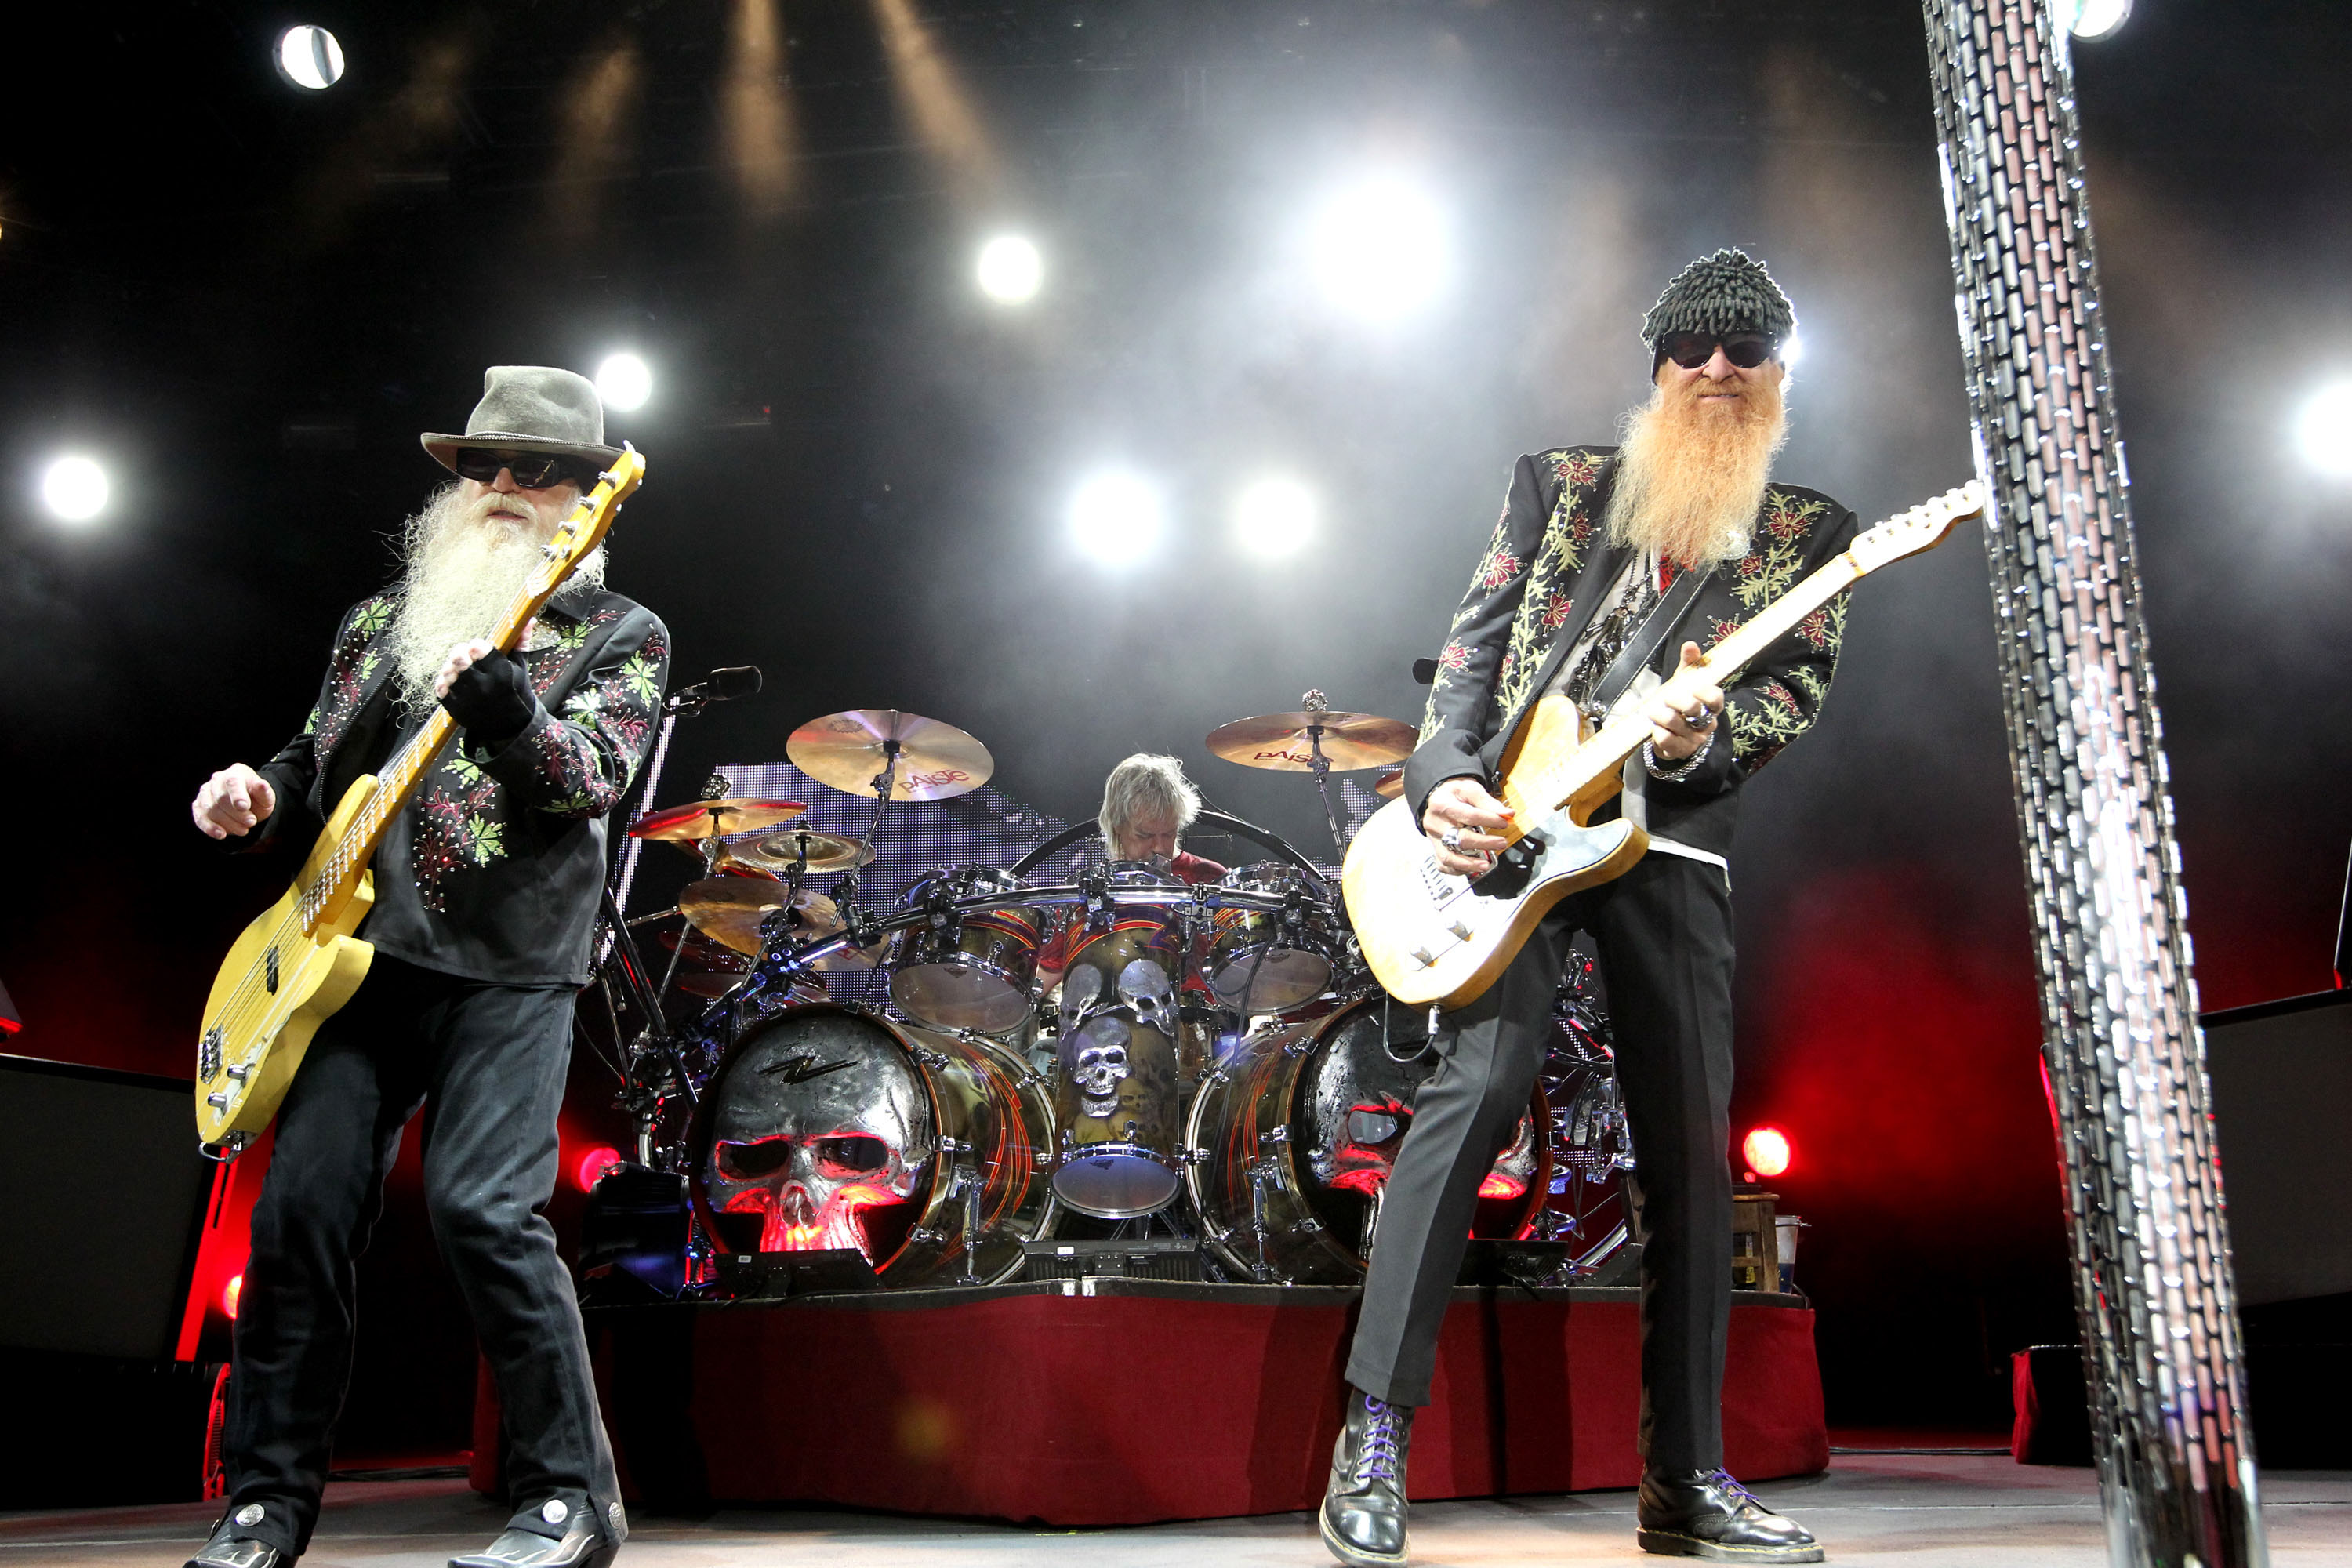 Zz top iphone wallpaper - Hd Wallpaper Background Id 406224